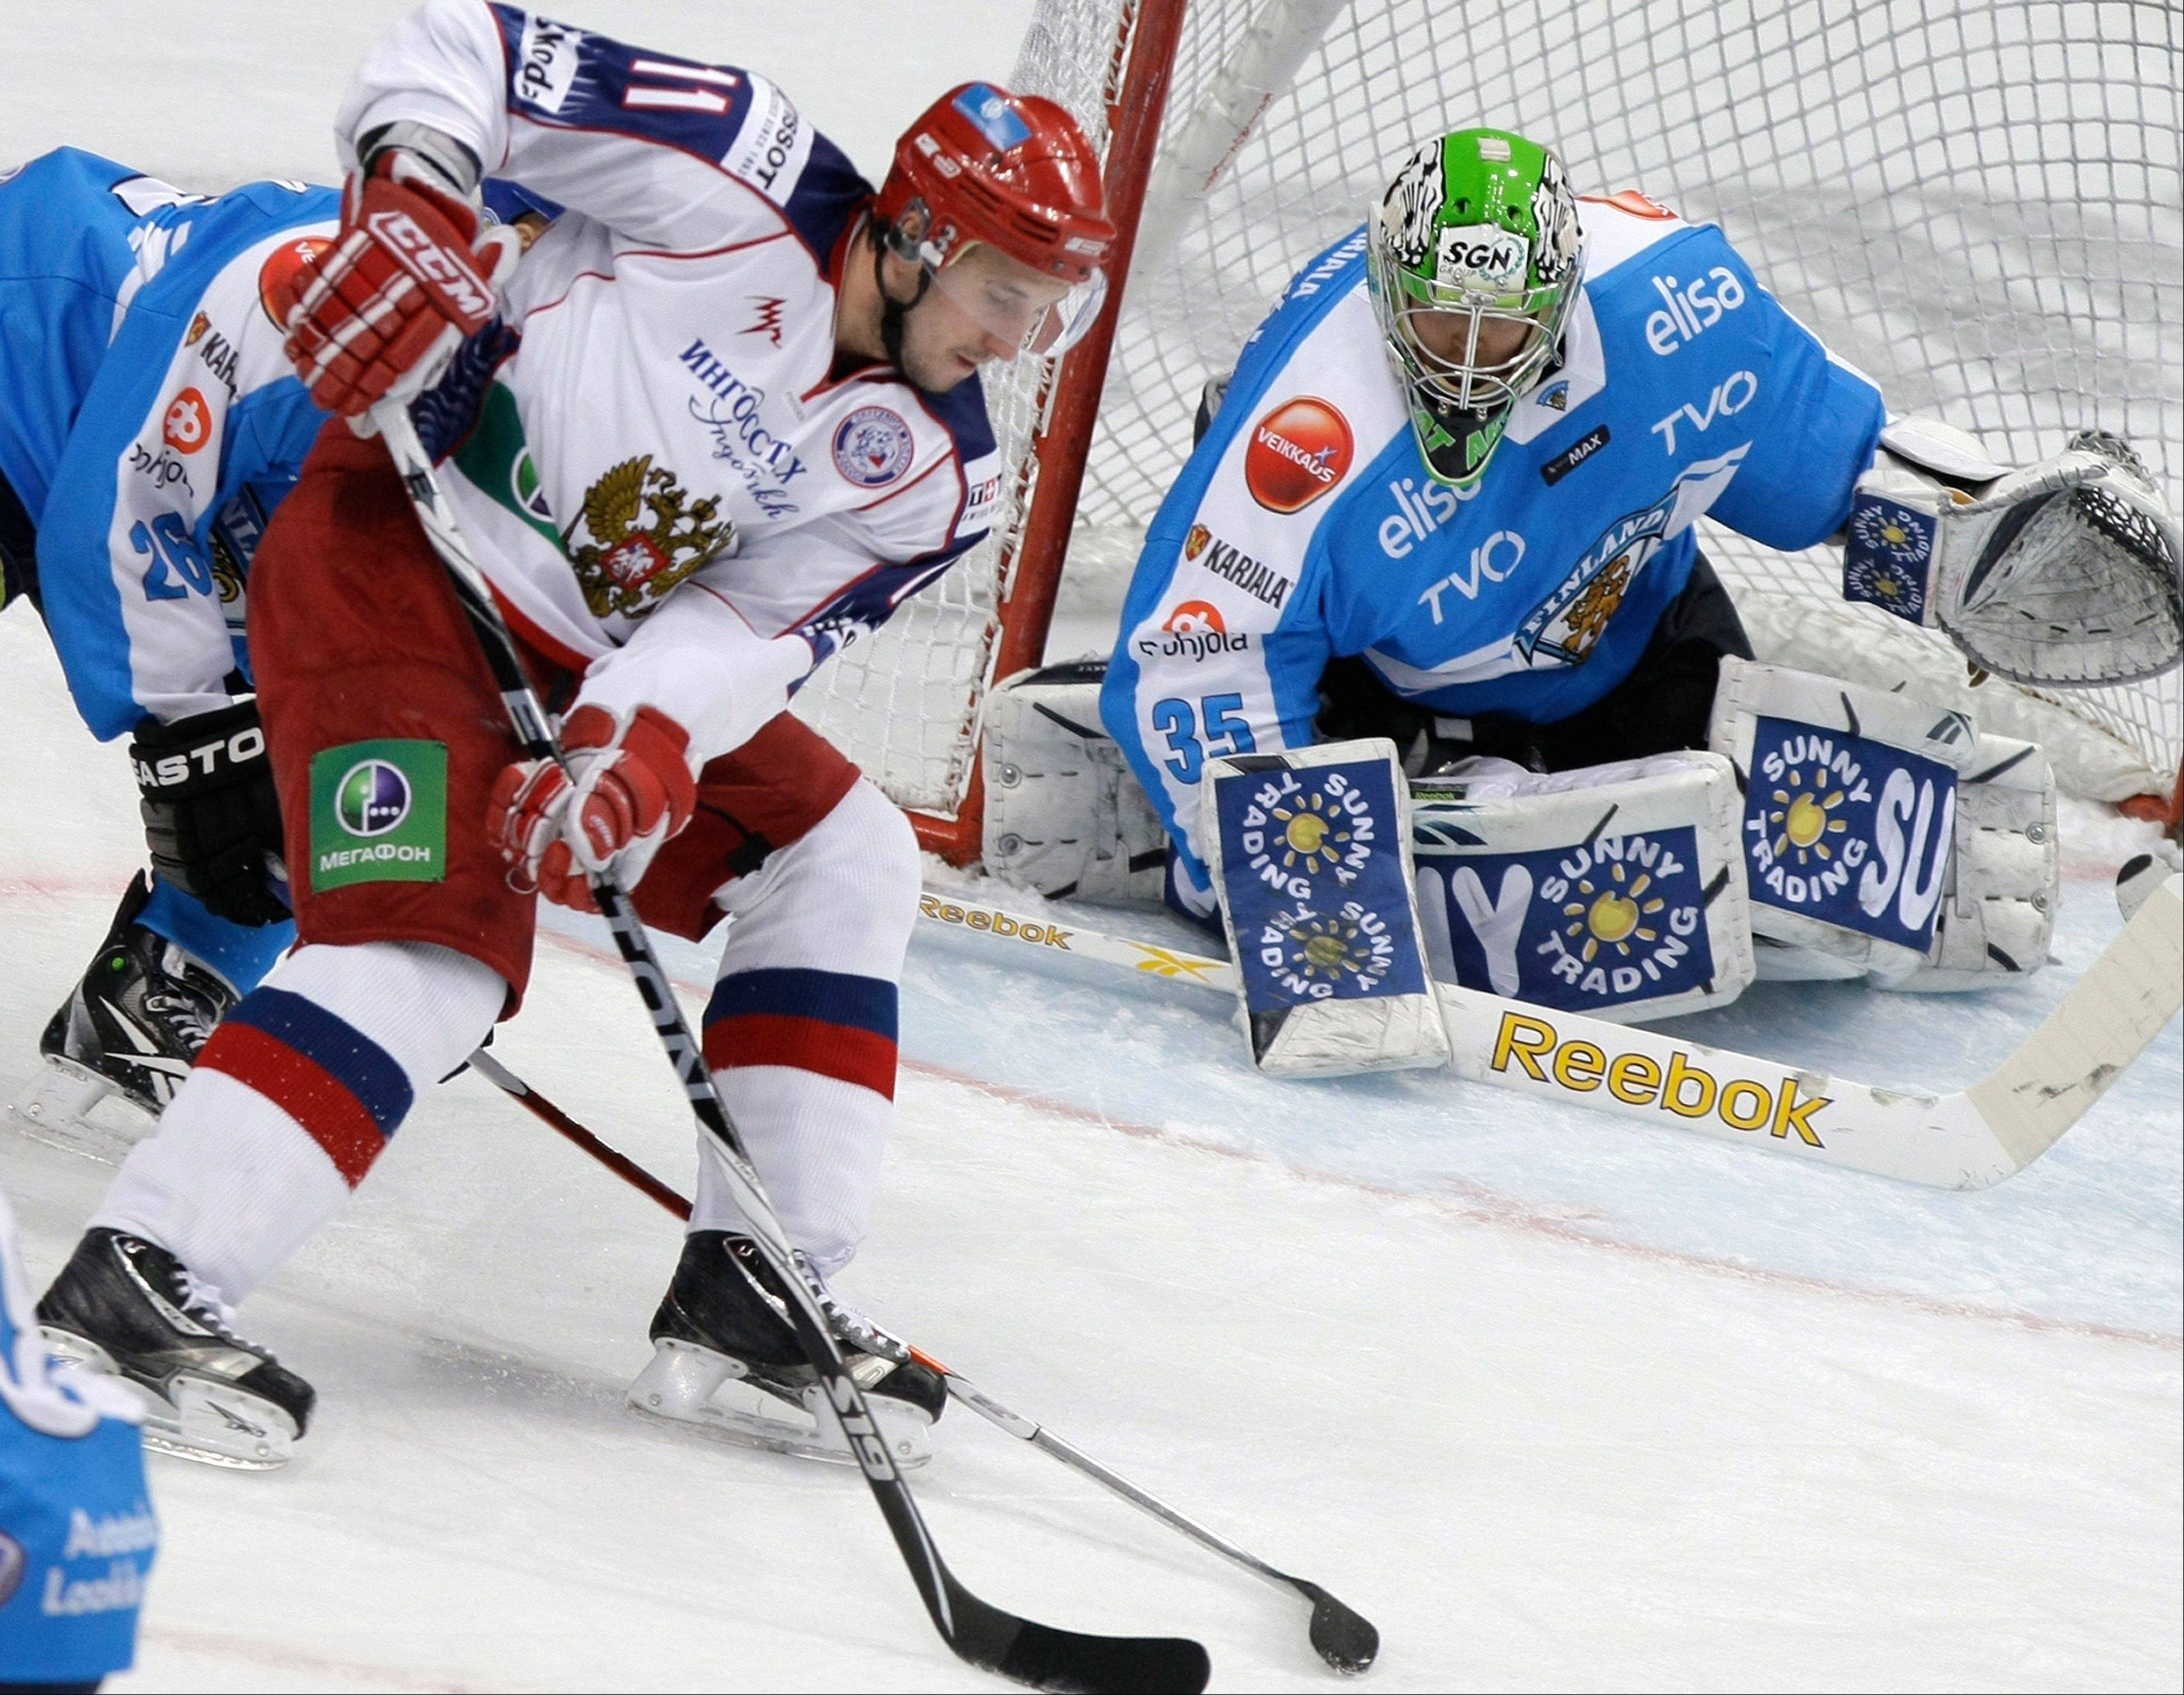 Russia's Alexander Galimov, shown here on left trying to score against Finland's Liro Tarkki during their Channel One Cup ice hockey match in Moscow last year, died Monday of injuries suffered in the Russian jet crash that killed his teammates last Wednesday.